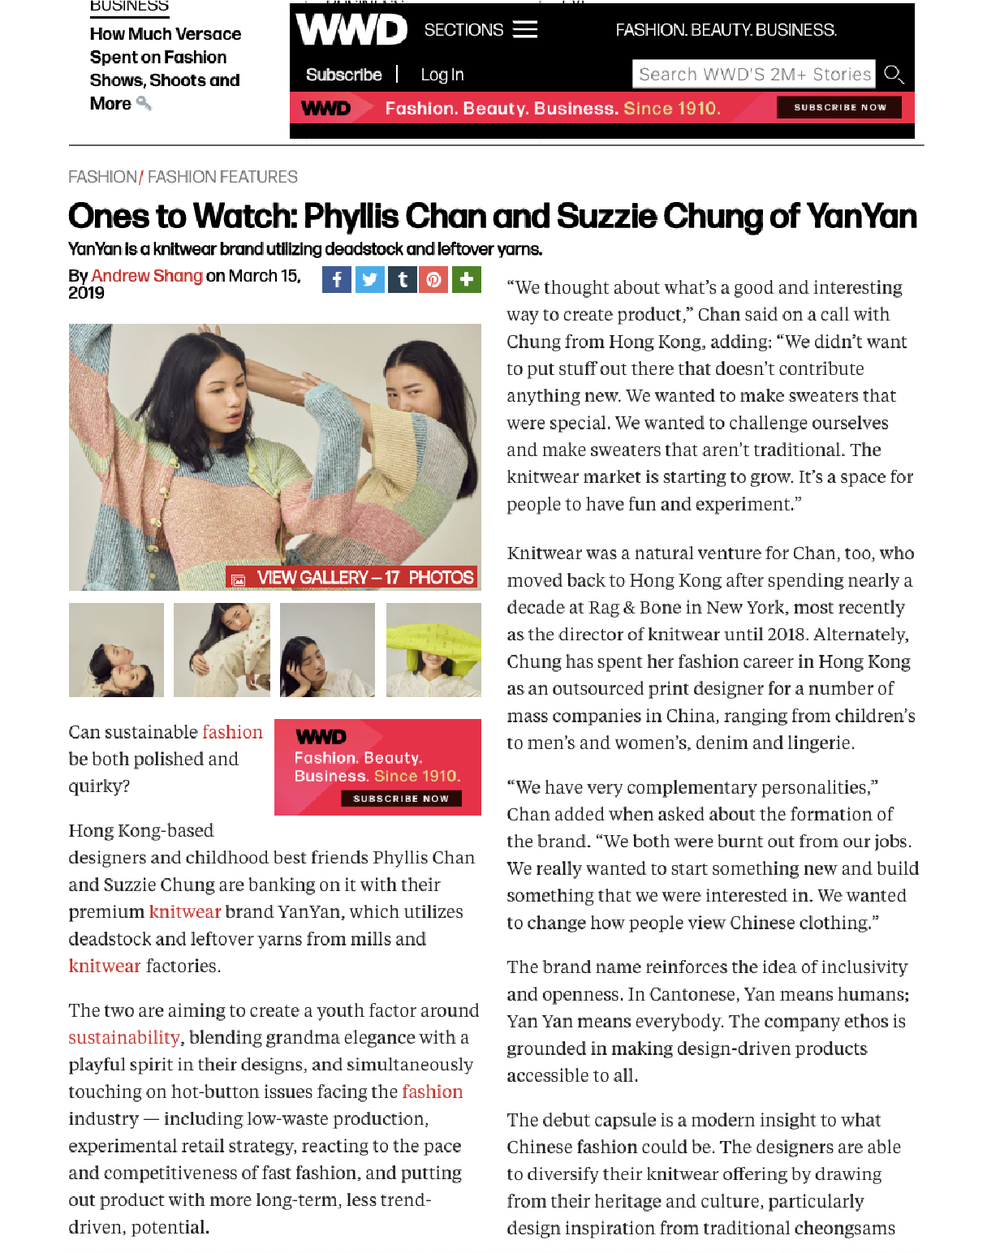 https://wwd.com/fashion-news/fashion-features/ones-to-watch-phyllis-chan-suzzie-chung-of-yanyan-1203086086/